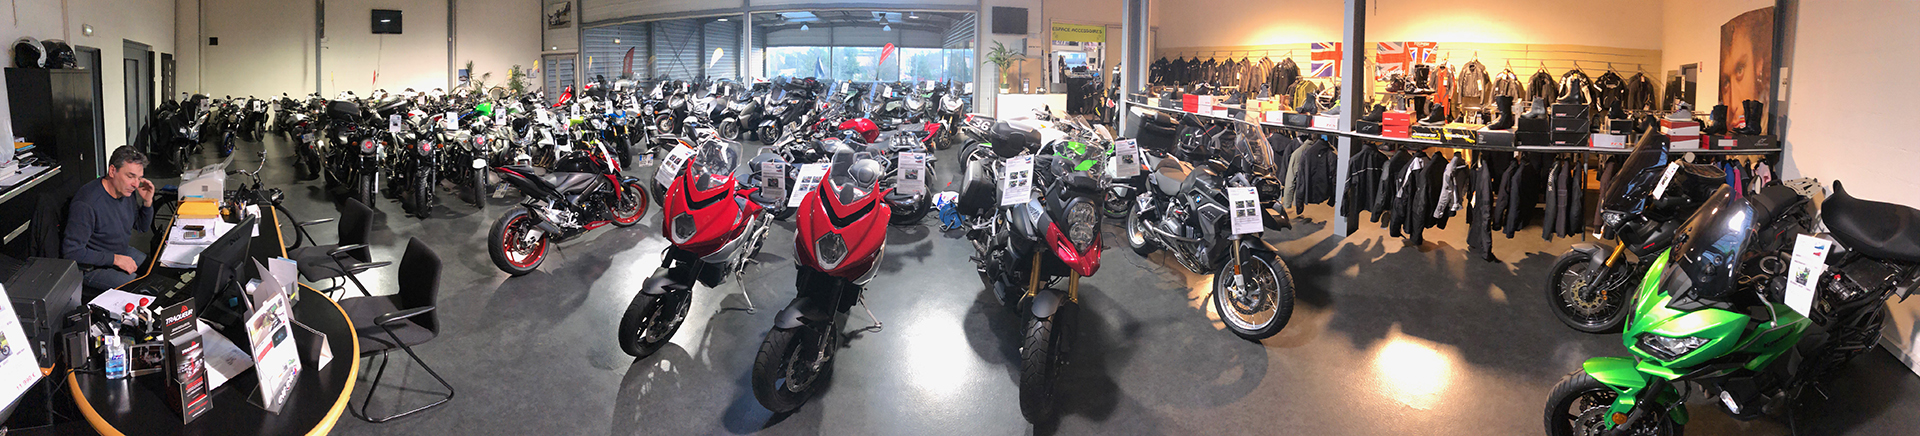 showroom occasion Paris Nord Moto